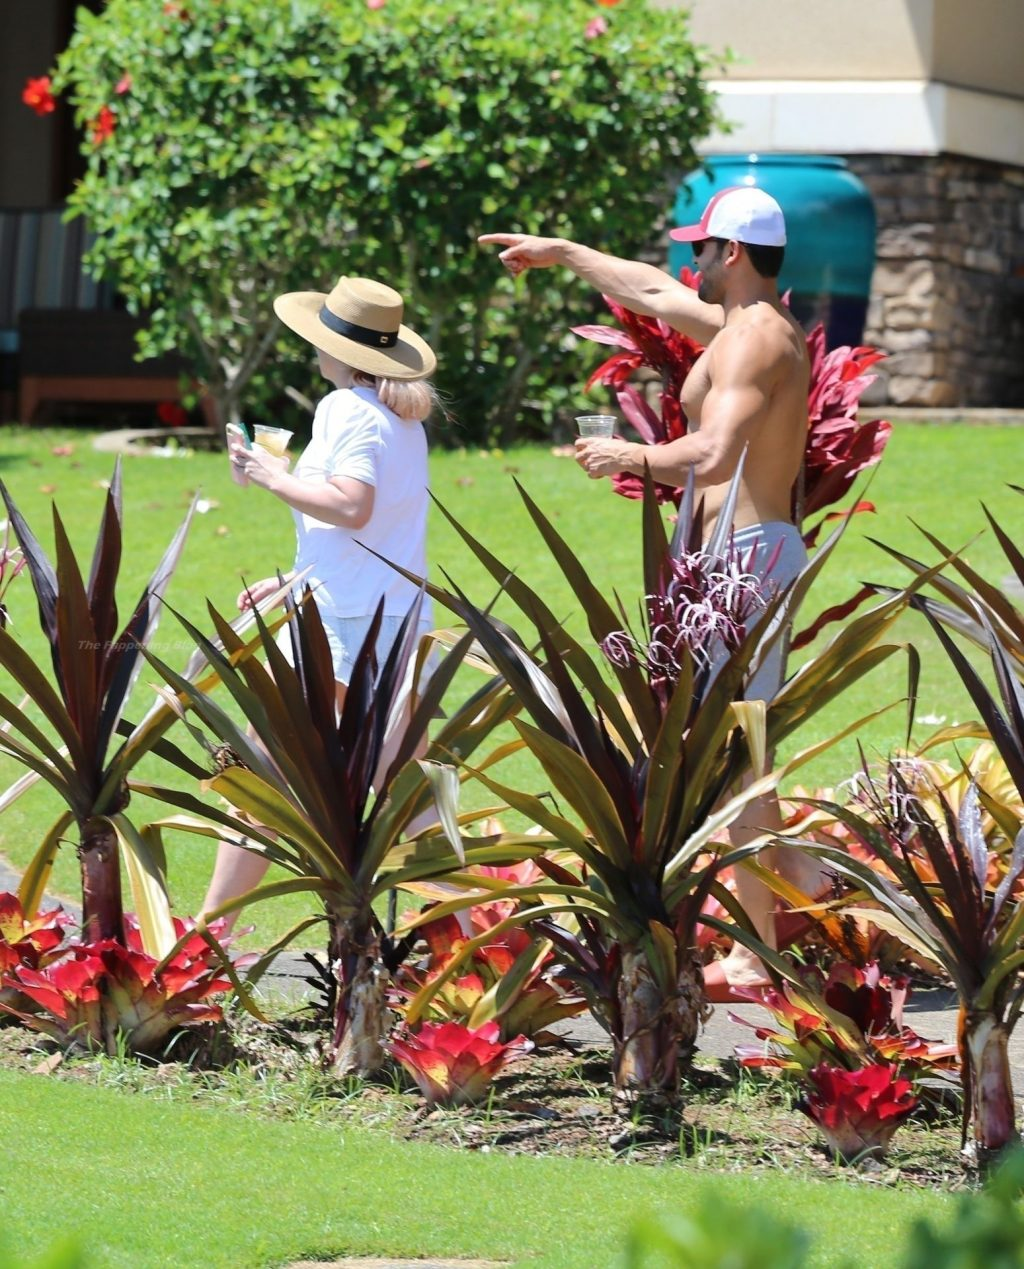 Britney Spears and Her Boyfriend Sam Asghari Escape to Maui After Britney's Explosive Hearing (31 Photos)